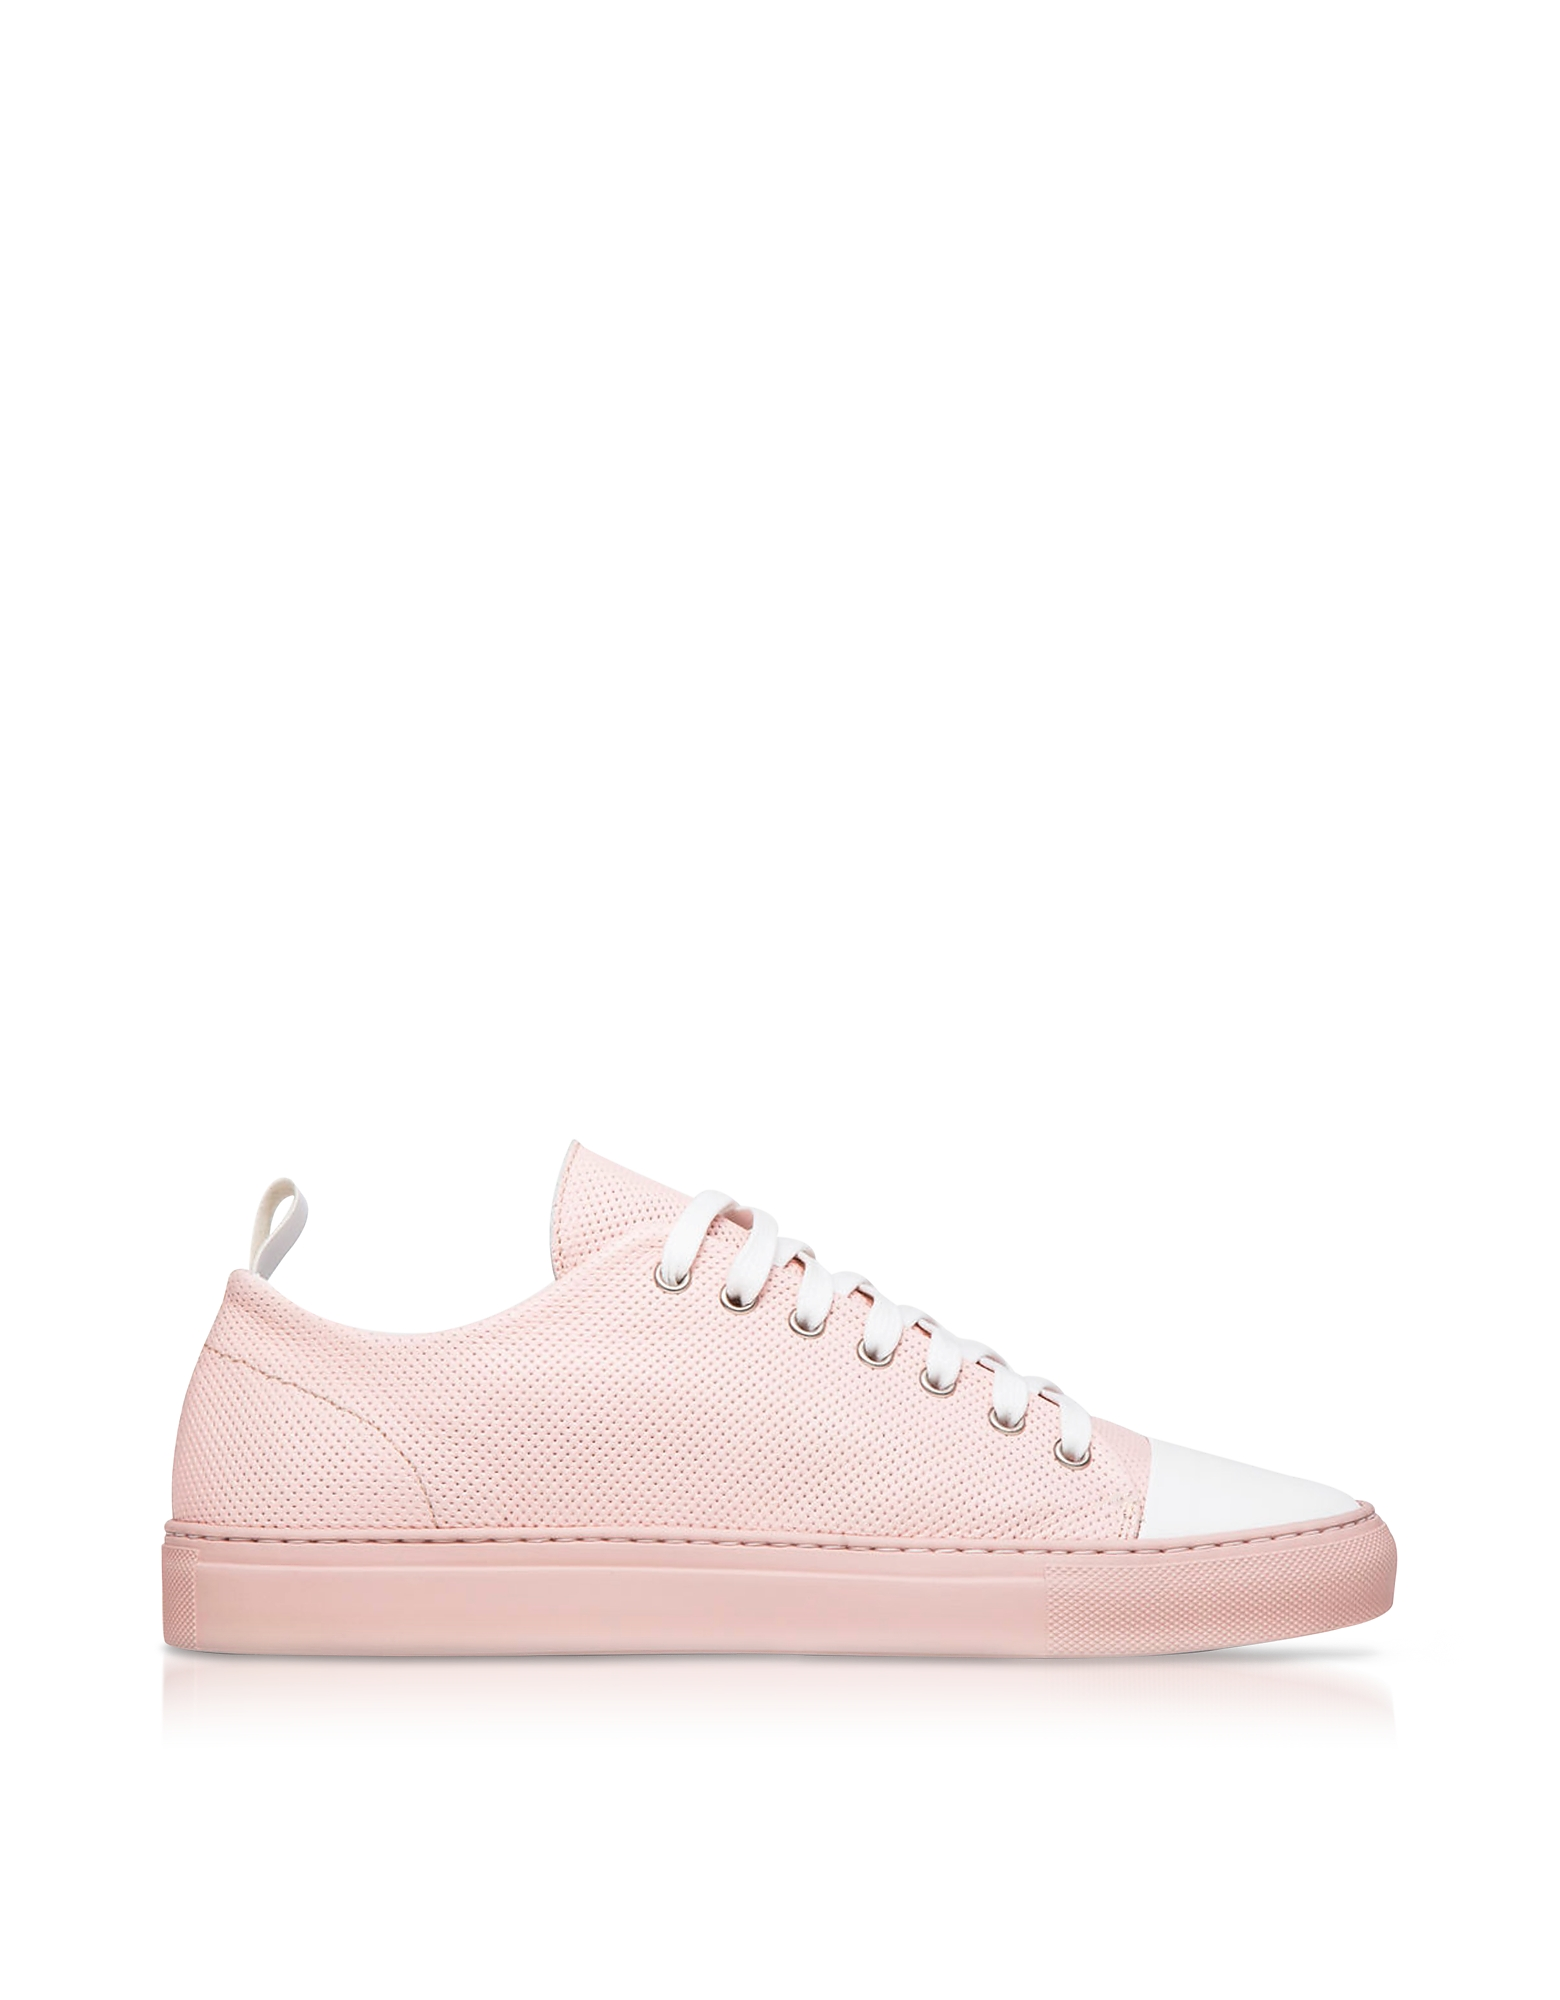 Ylati Sorrento Pink Perforated Leather Low Top Men's Sneakers